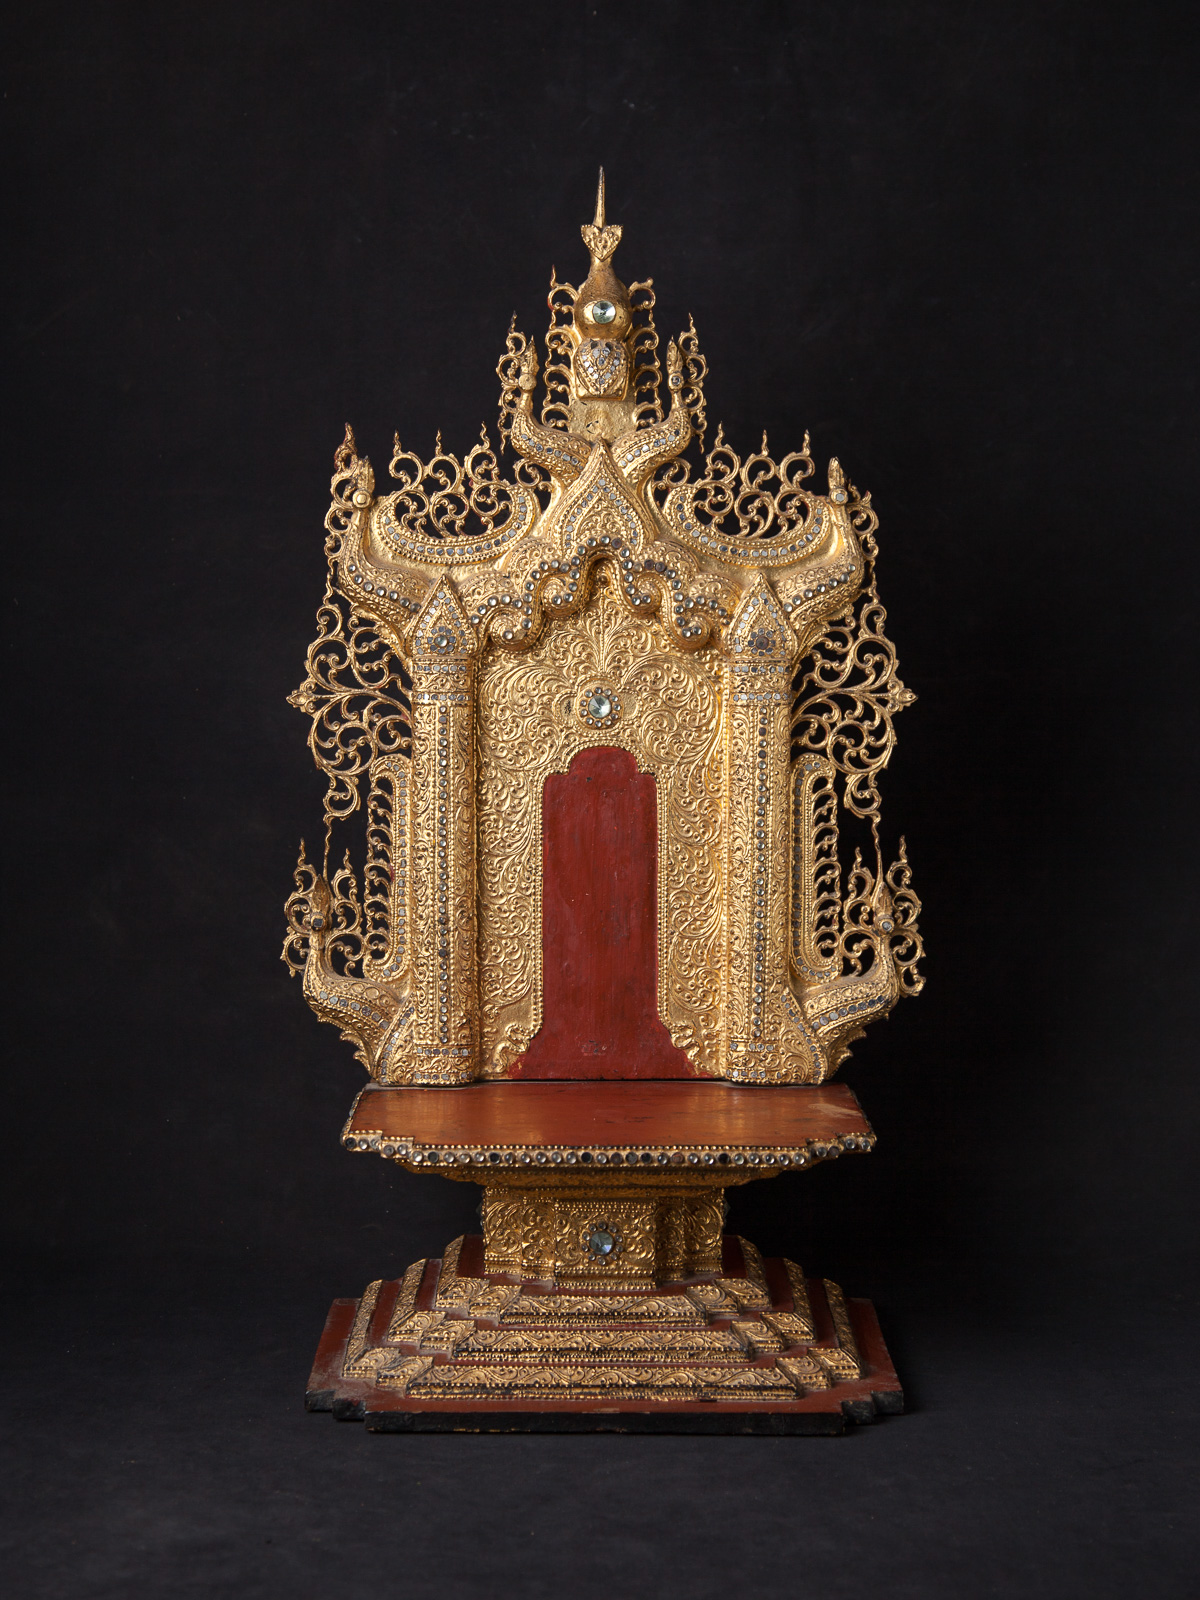 Antique wooden Buddha throne from Burma